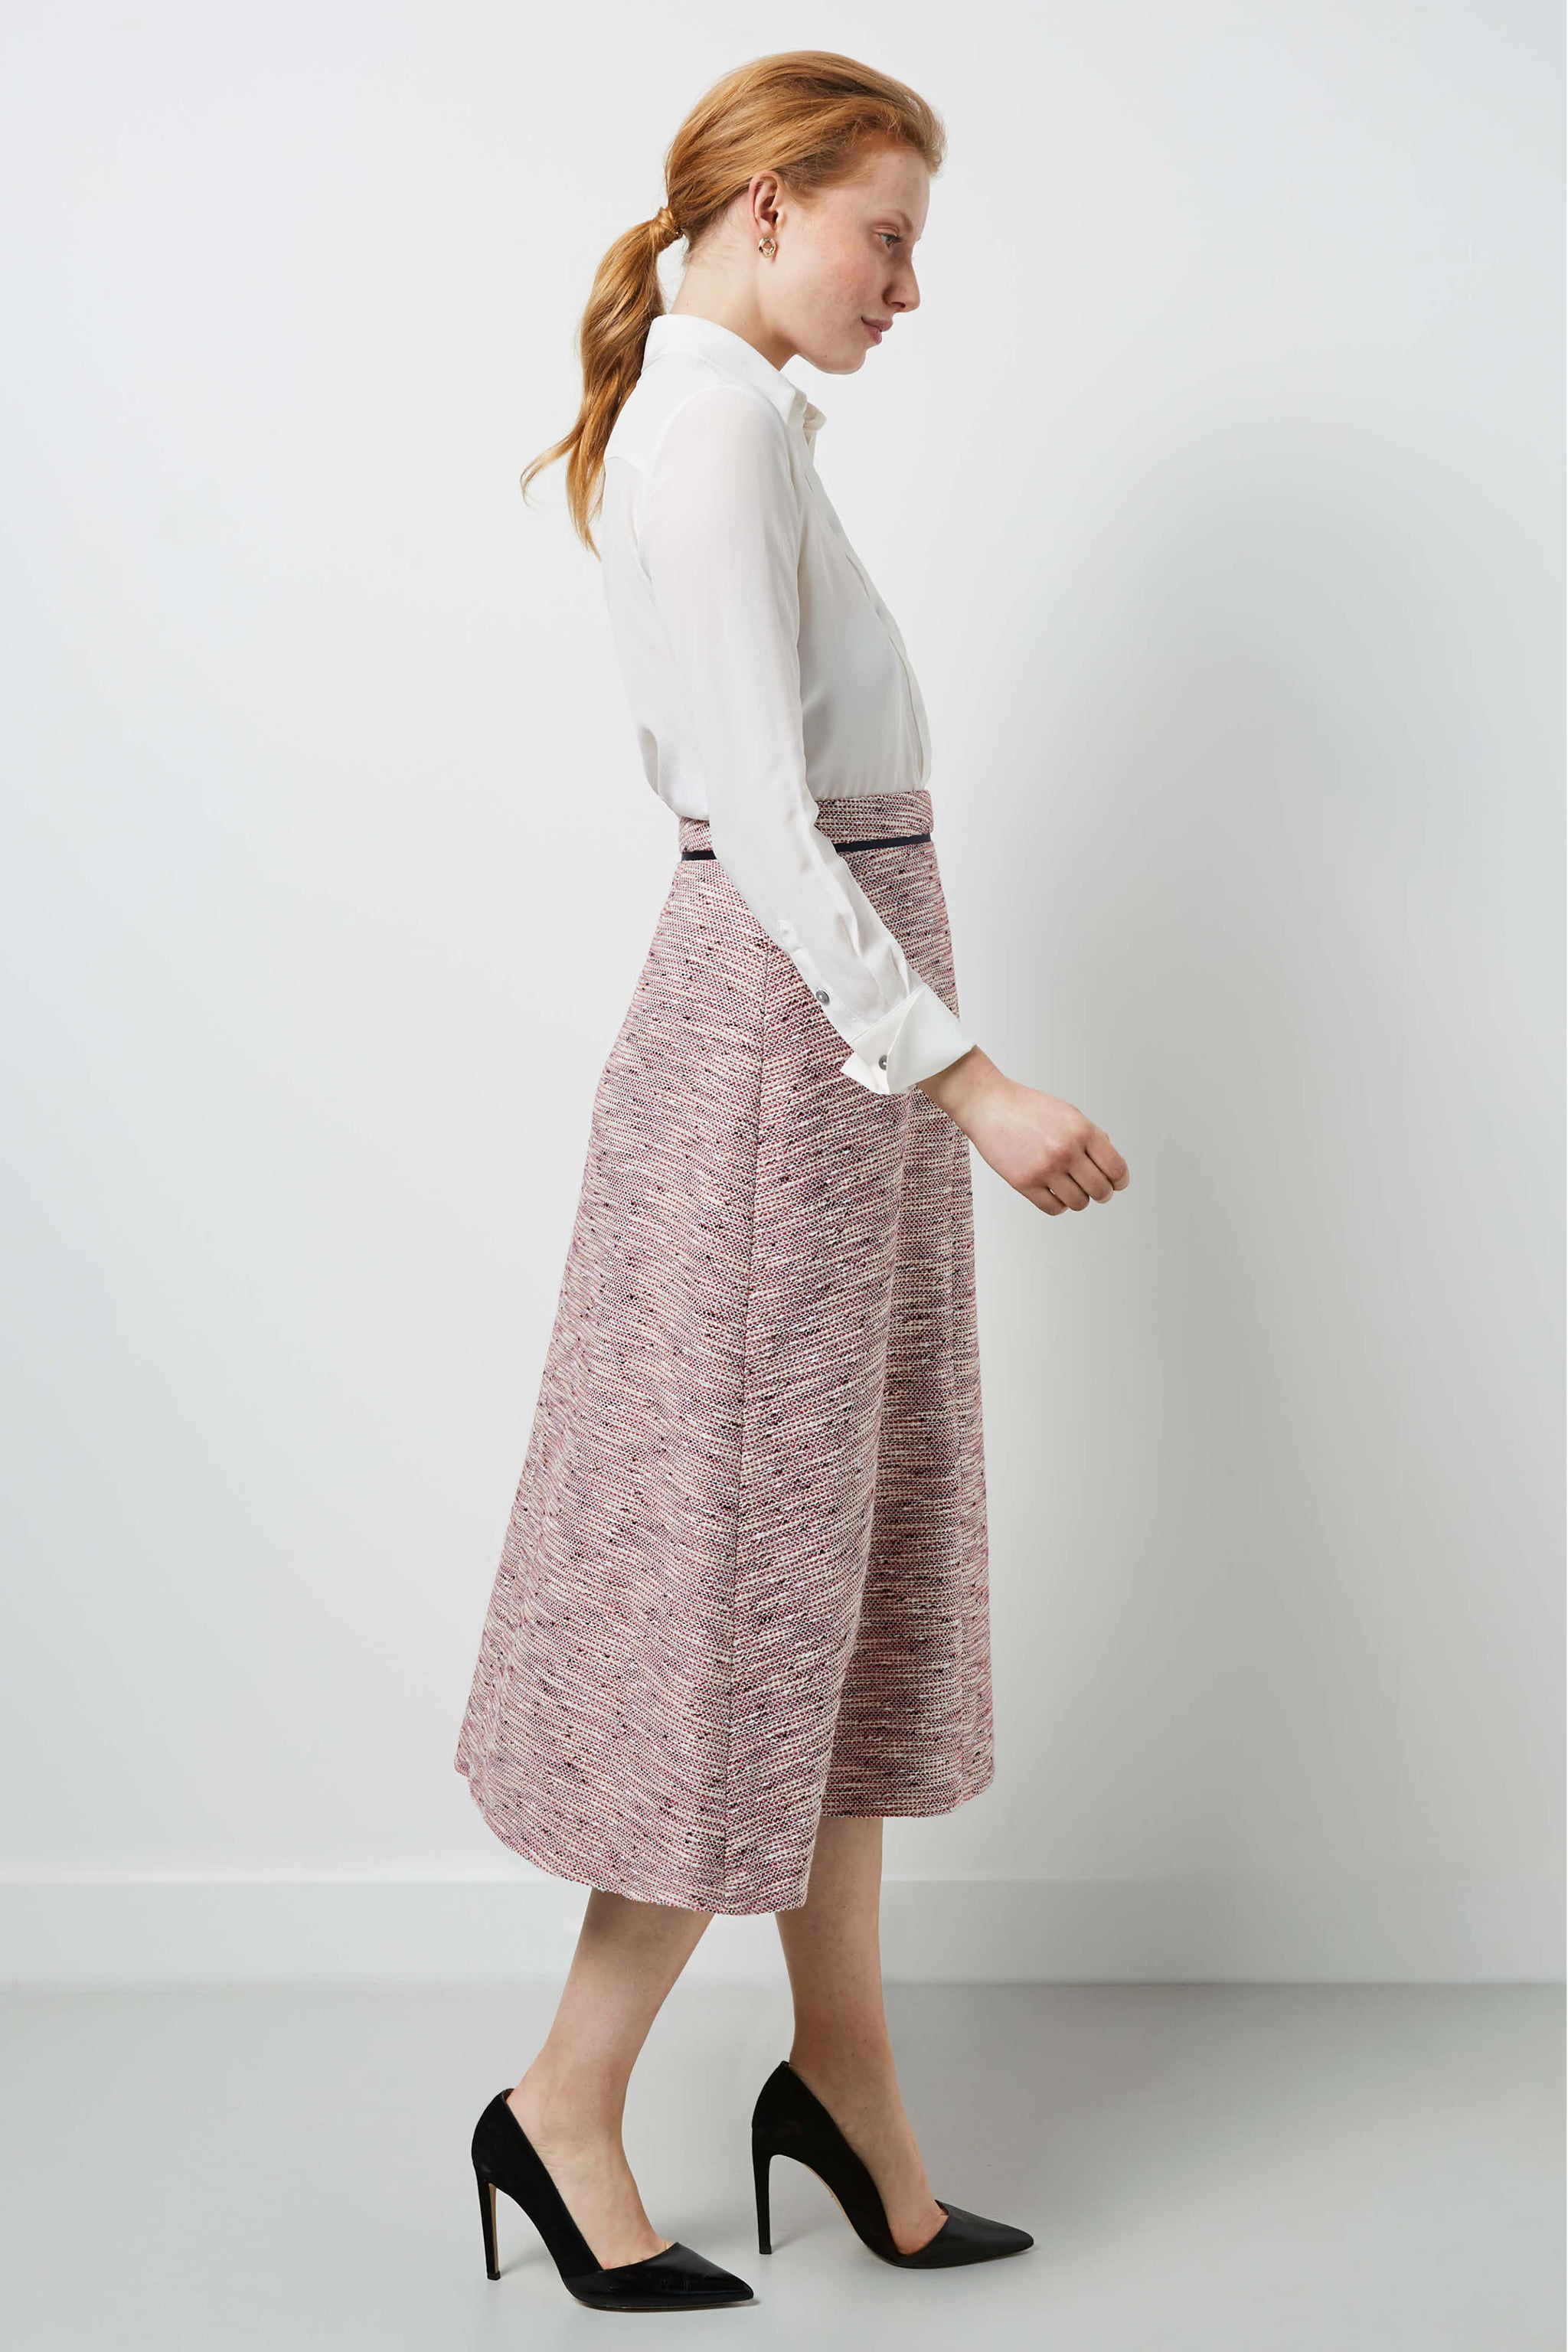 Penrith Red Jacquard Skirt